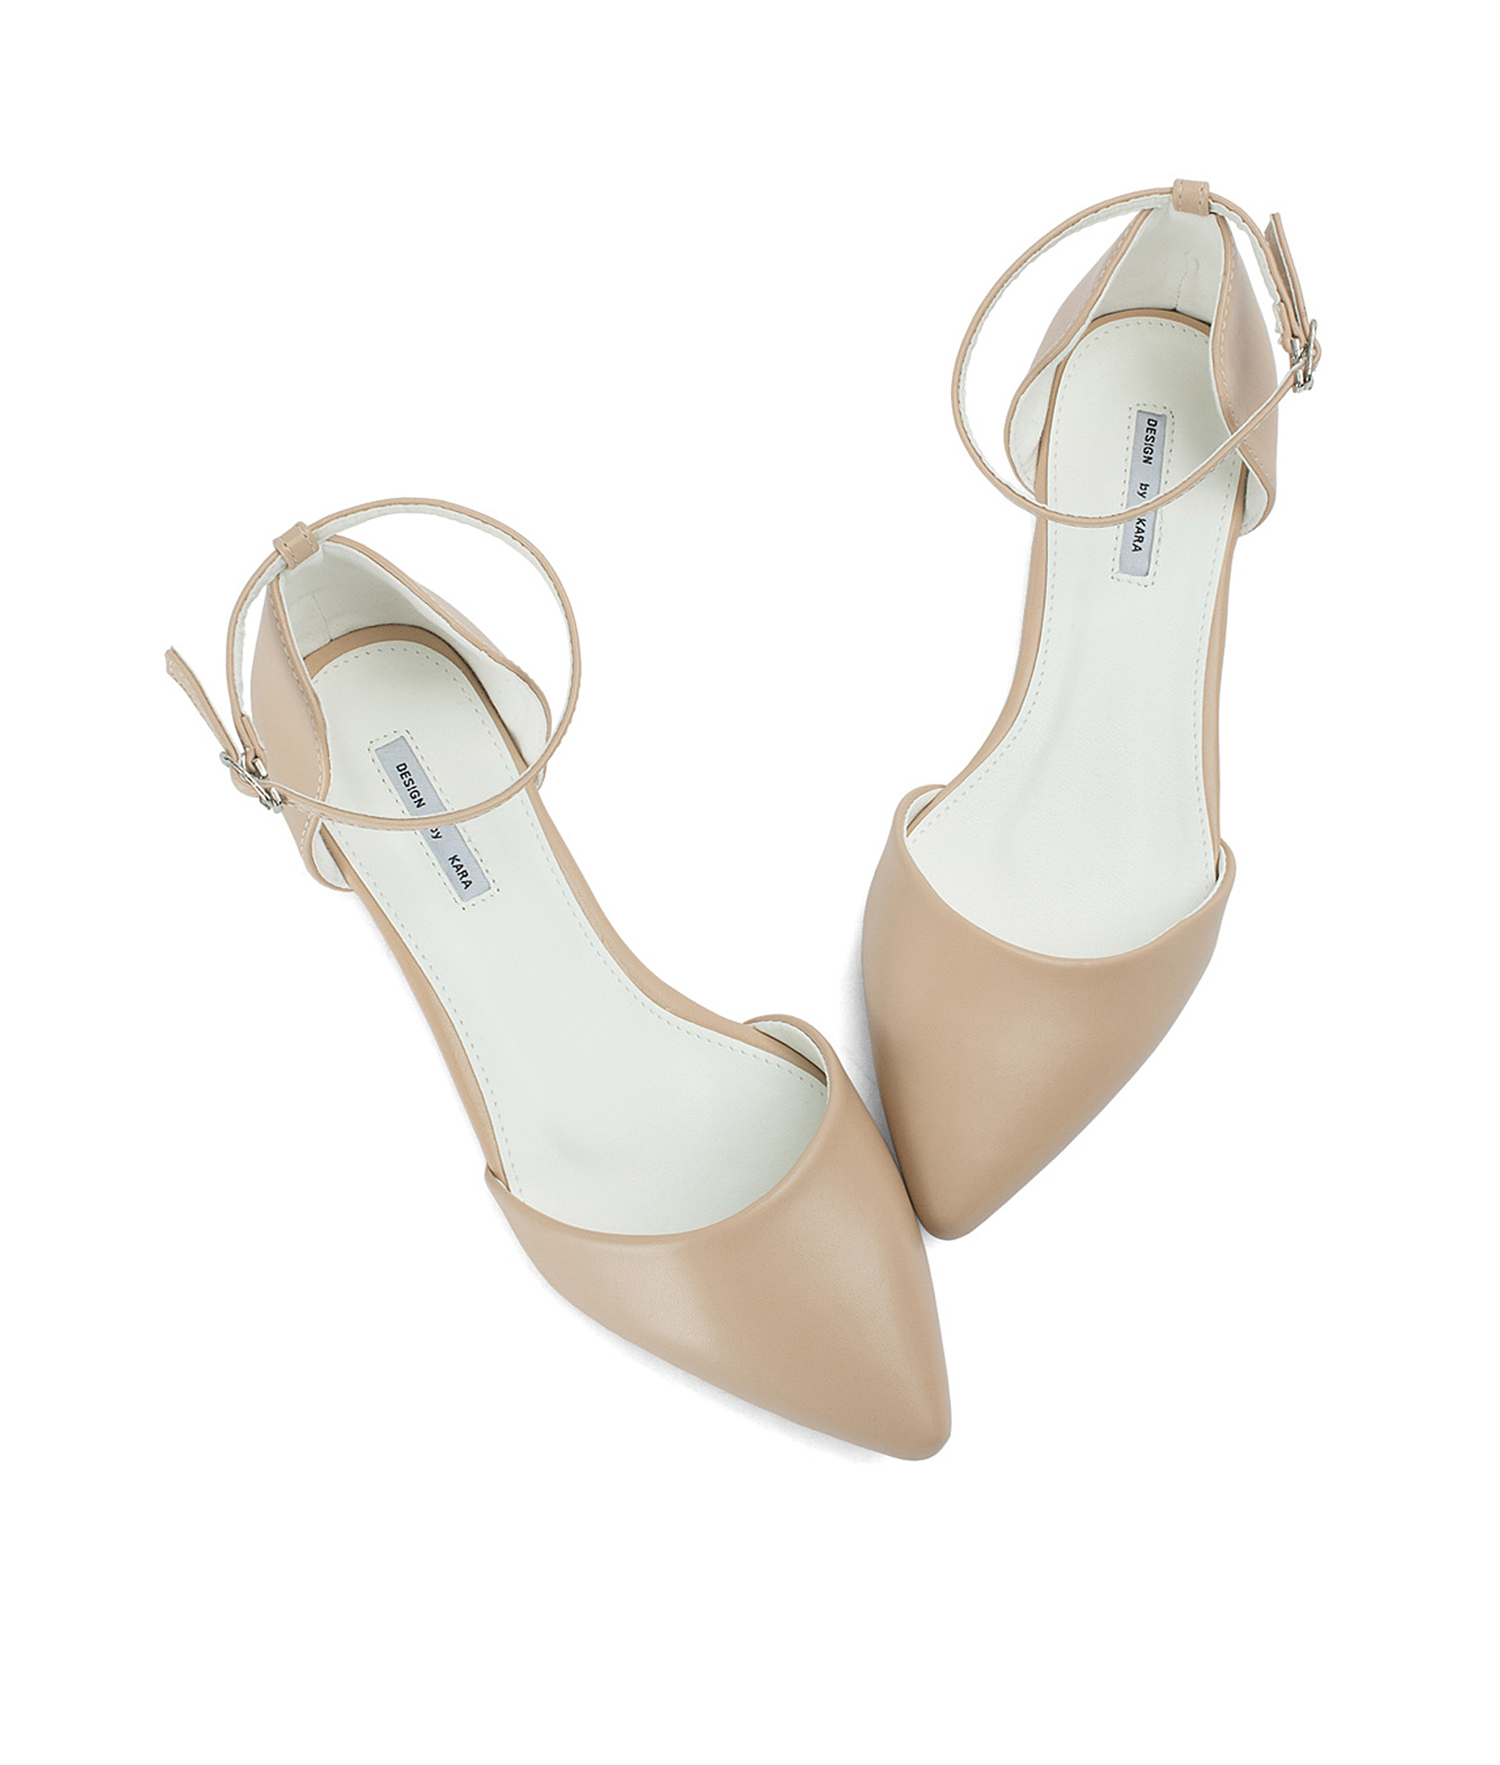 88b9ab517ed Pointed Toe Ankle Strap d'Orsay Flats